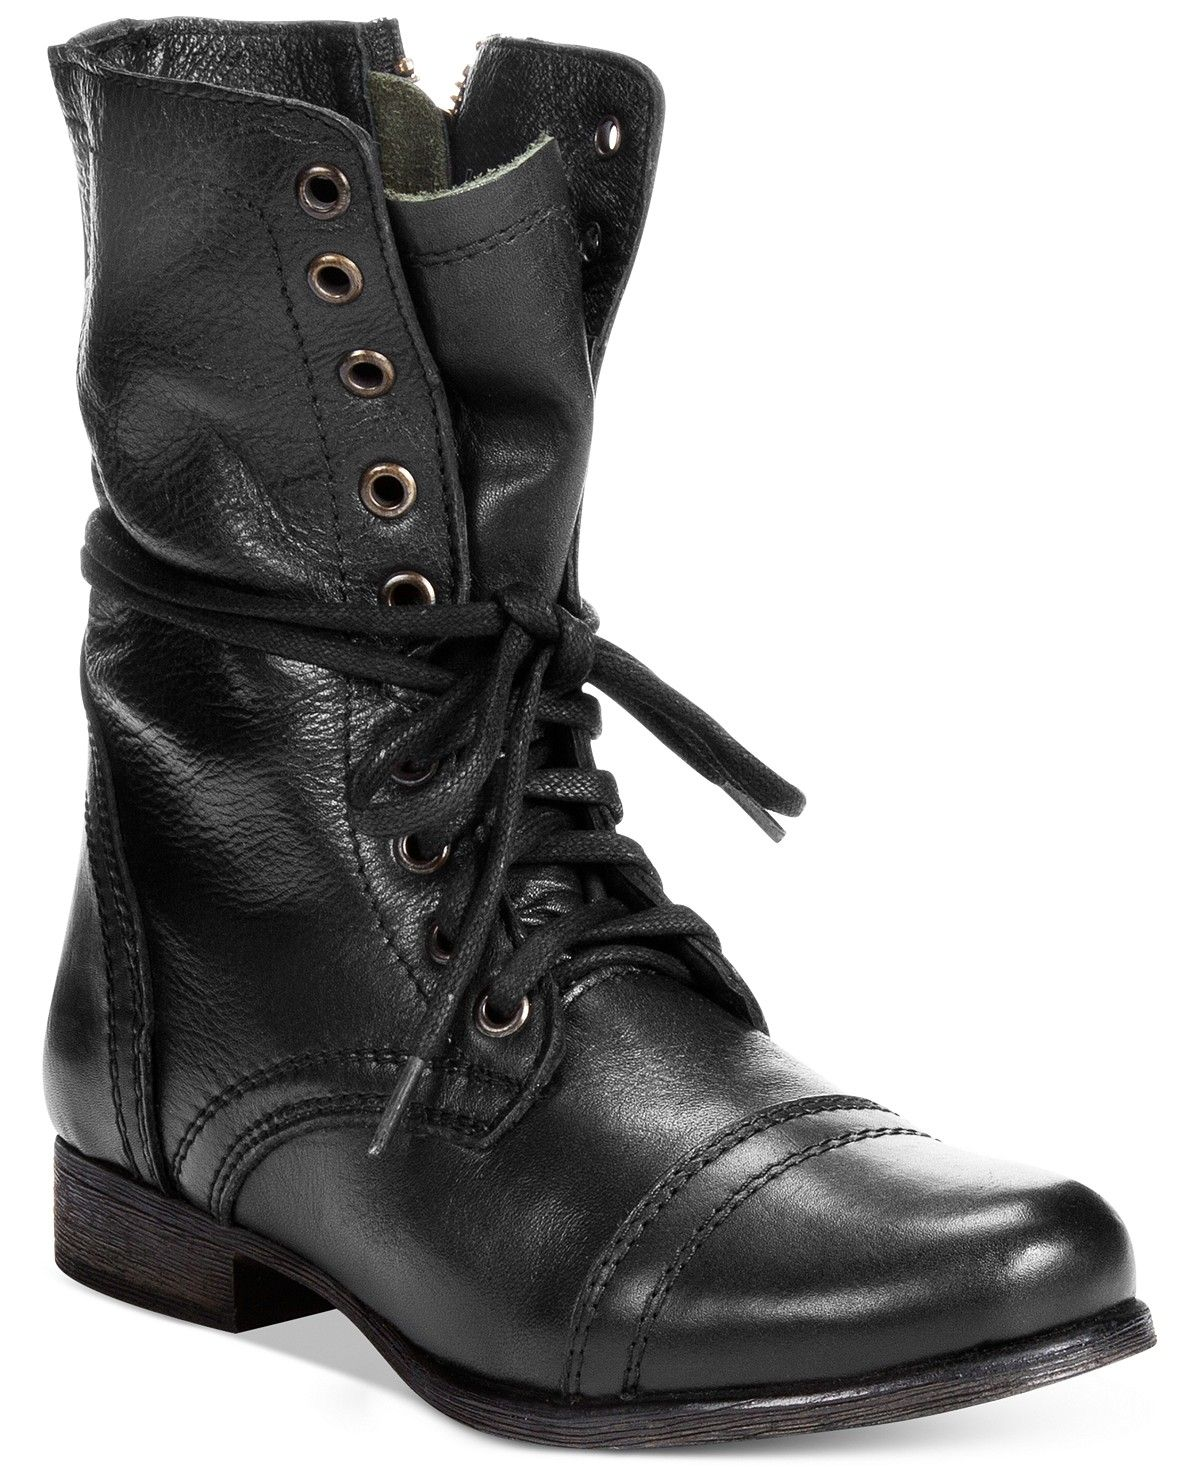 c8367cab3cf Steve Madden Women s Troopa Combat Boots - Boots - Shoes - Macy s Zapatos